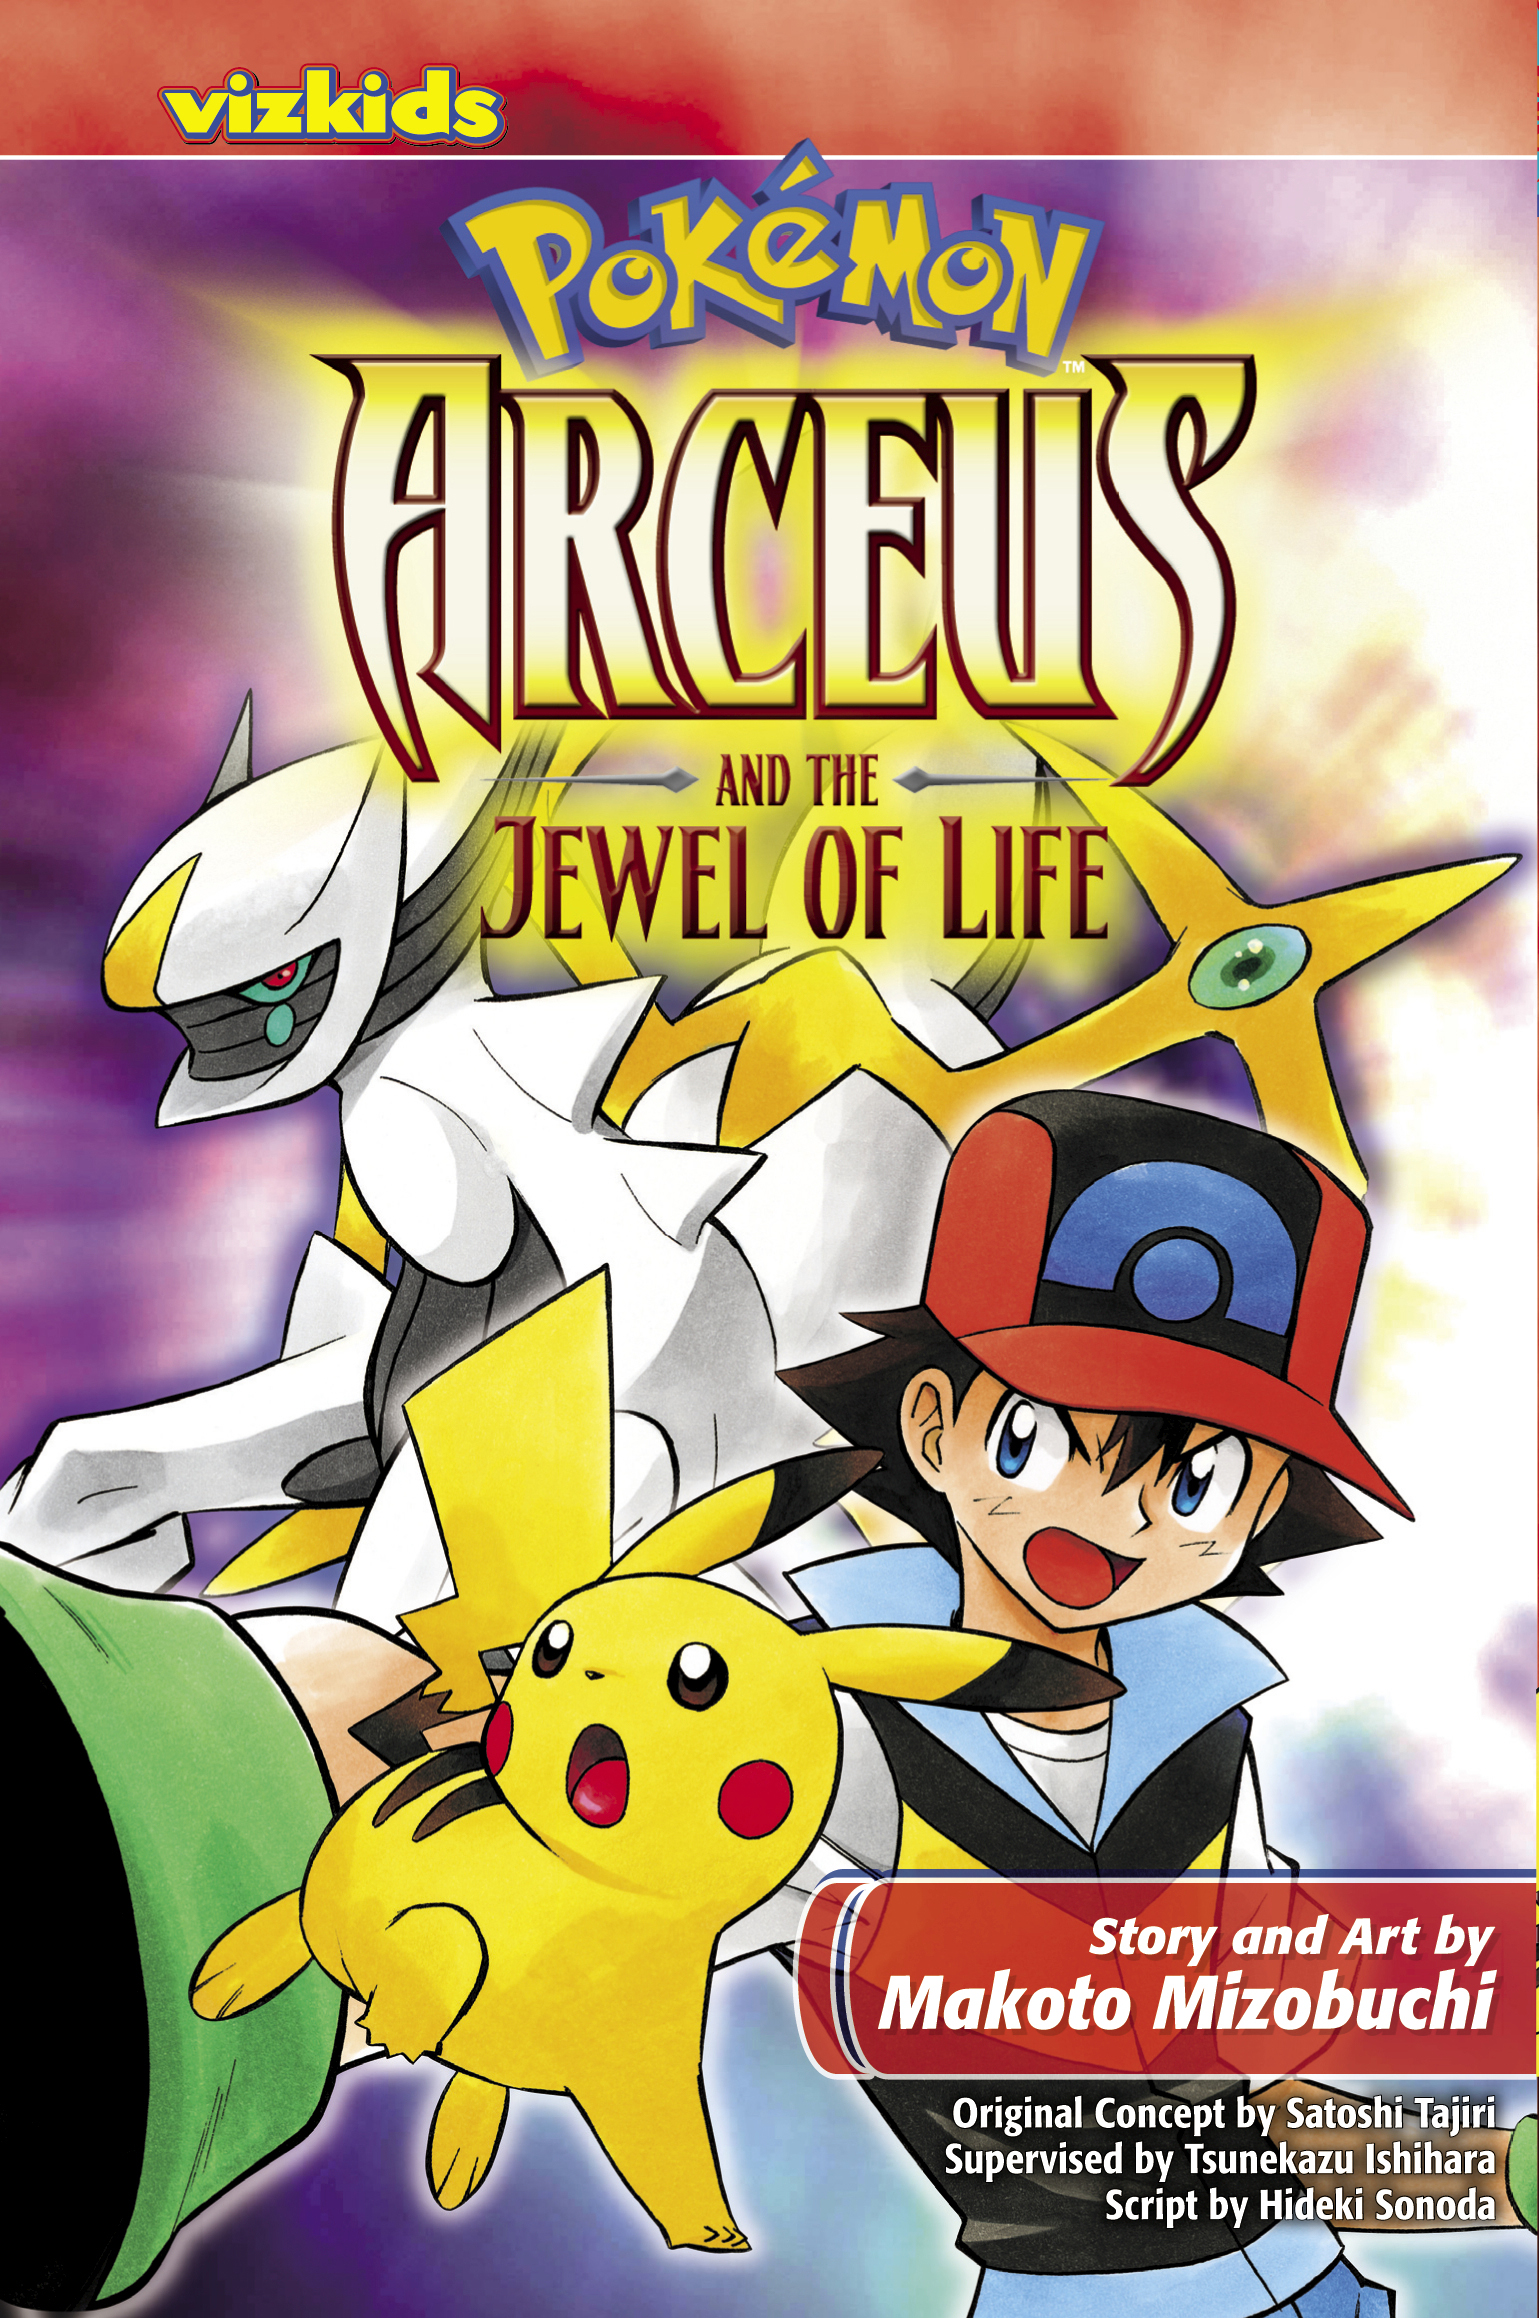 pok233mon arceus and the jewel of life book by mizobuchi